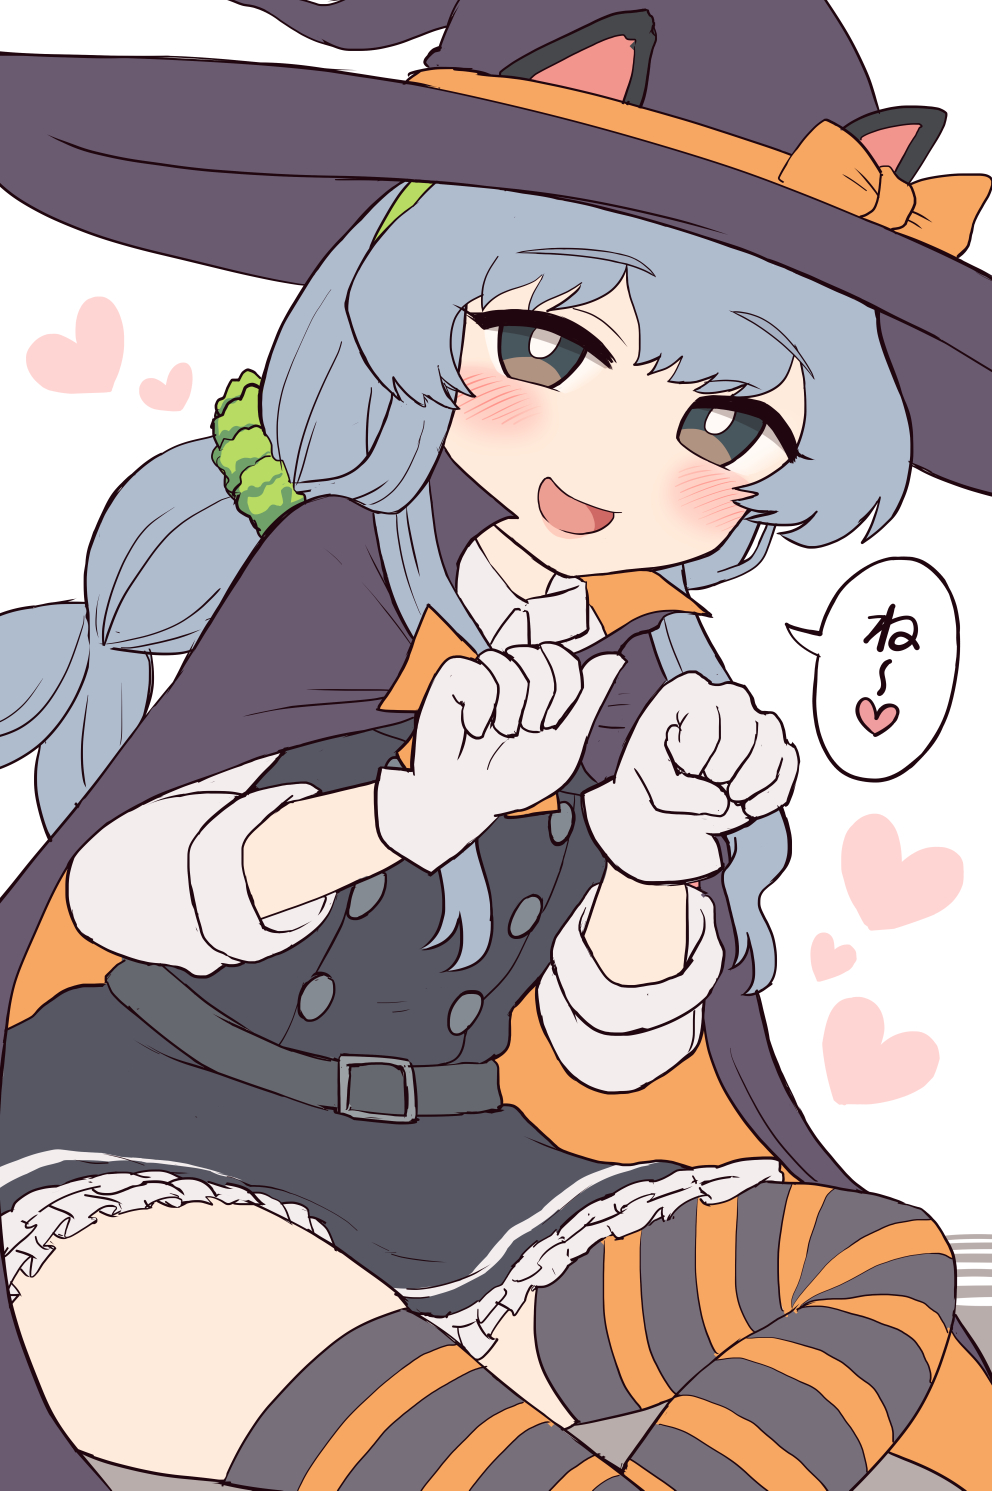 1girl animal_ears asashio_(kantai_collection) asashio_(kantai_collection)_(cosplay) bangs black_dress blush braid cape cat_ears cat_tail cosplay dress eyebrows_visible_through_hair frilled_dress frills gloves grey_hair grey_hairband hair_ornament hair_scrunchie hairband halloween halloween_costume hat heart highres kantai_collection long_hair long_sleeves open_mouth paw_pose pinafore_dress scrunchie shirt sidelocks simoyuki simple_background single_braid sitting solo striped striped_legwear tail thigh-highs white_background white_gloves white_shirt witch_hat yamagumo_(kantai_collection)